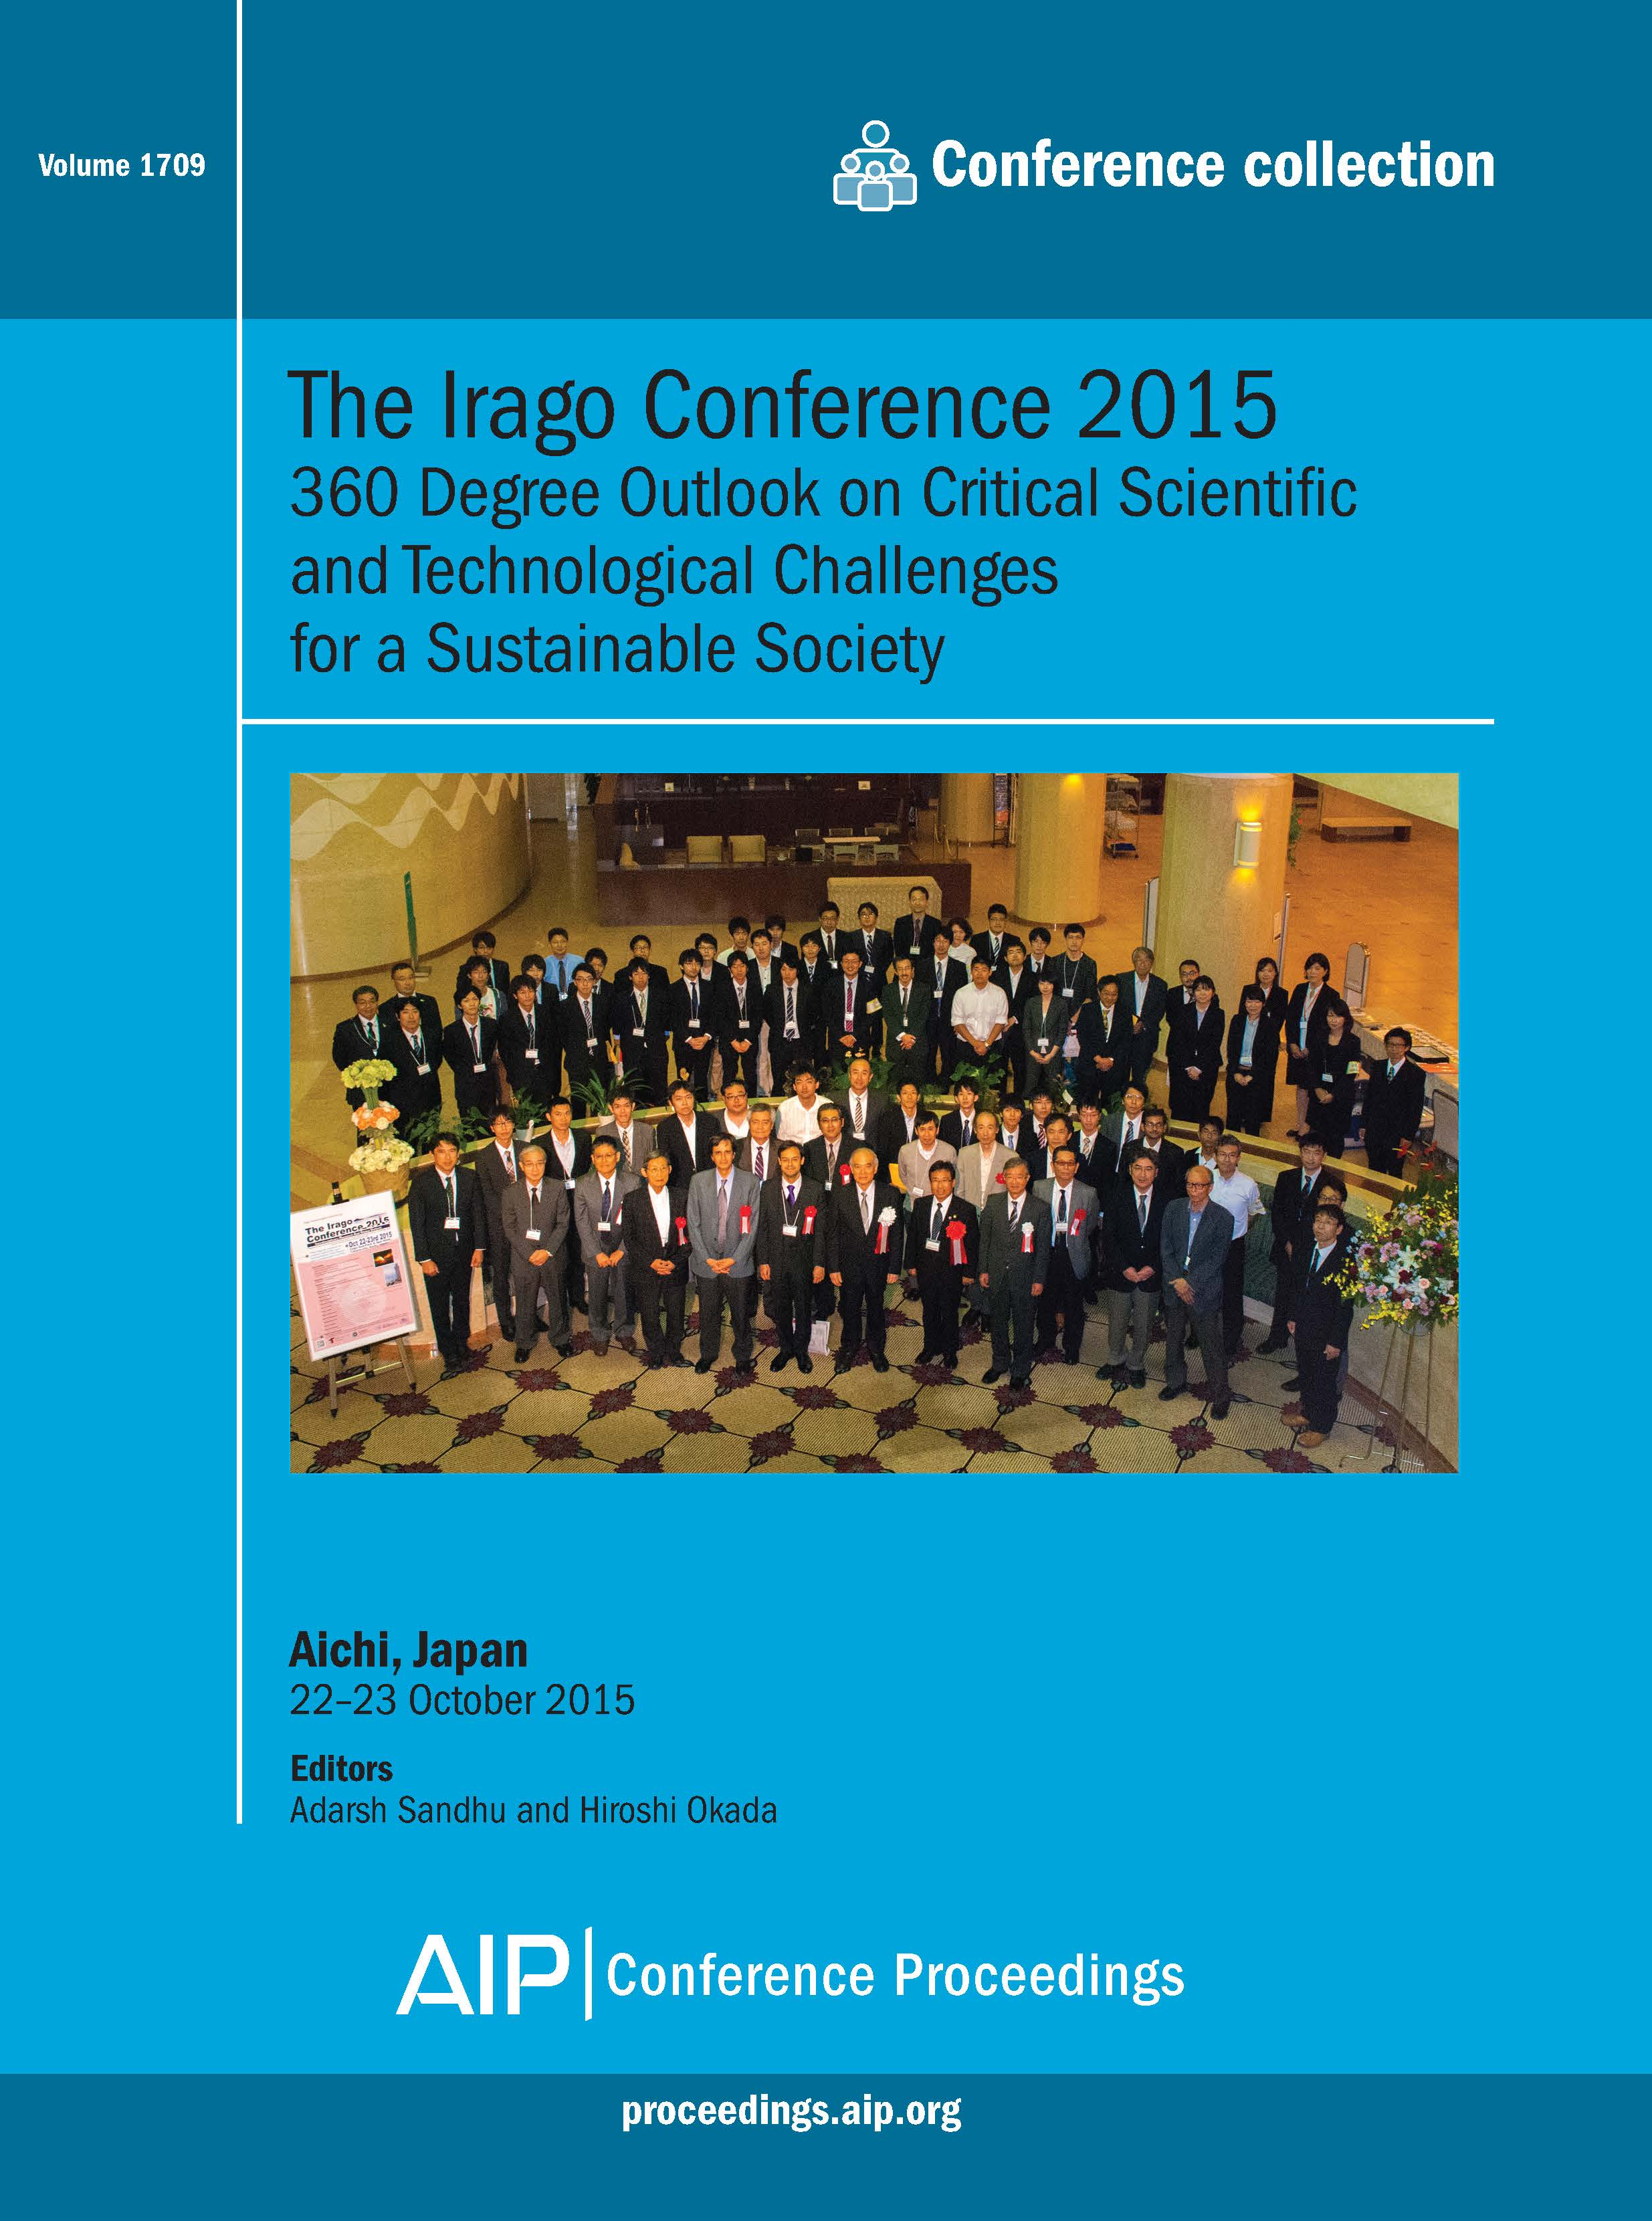 Volume 1709: The Irago Conference 2015 | AIP Publishing